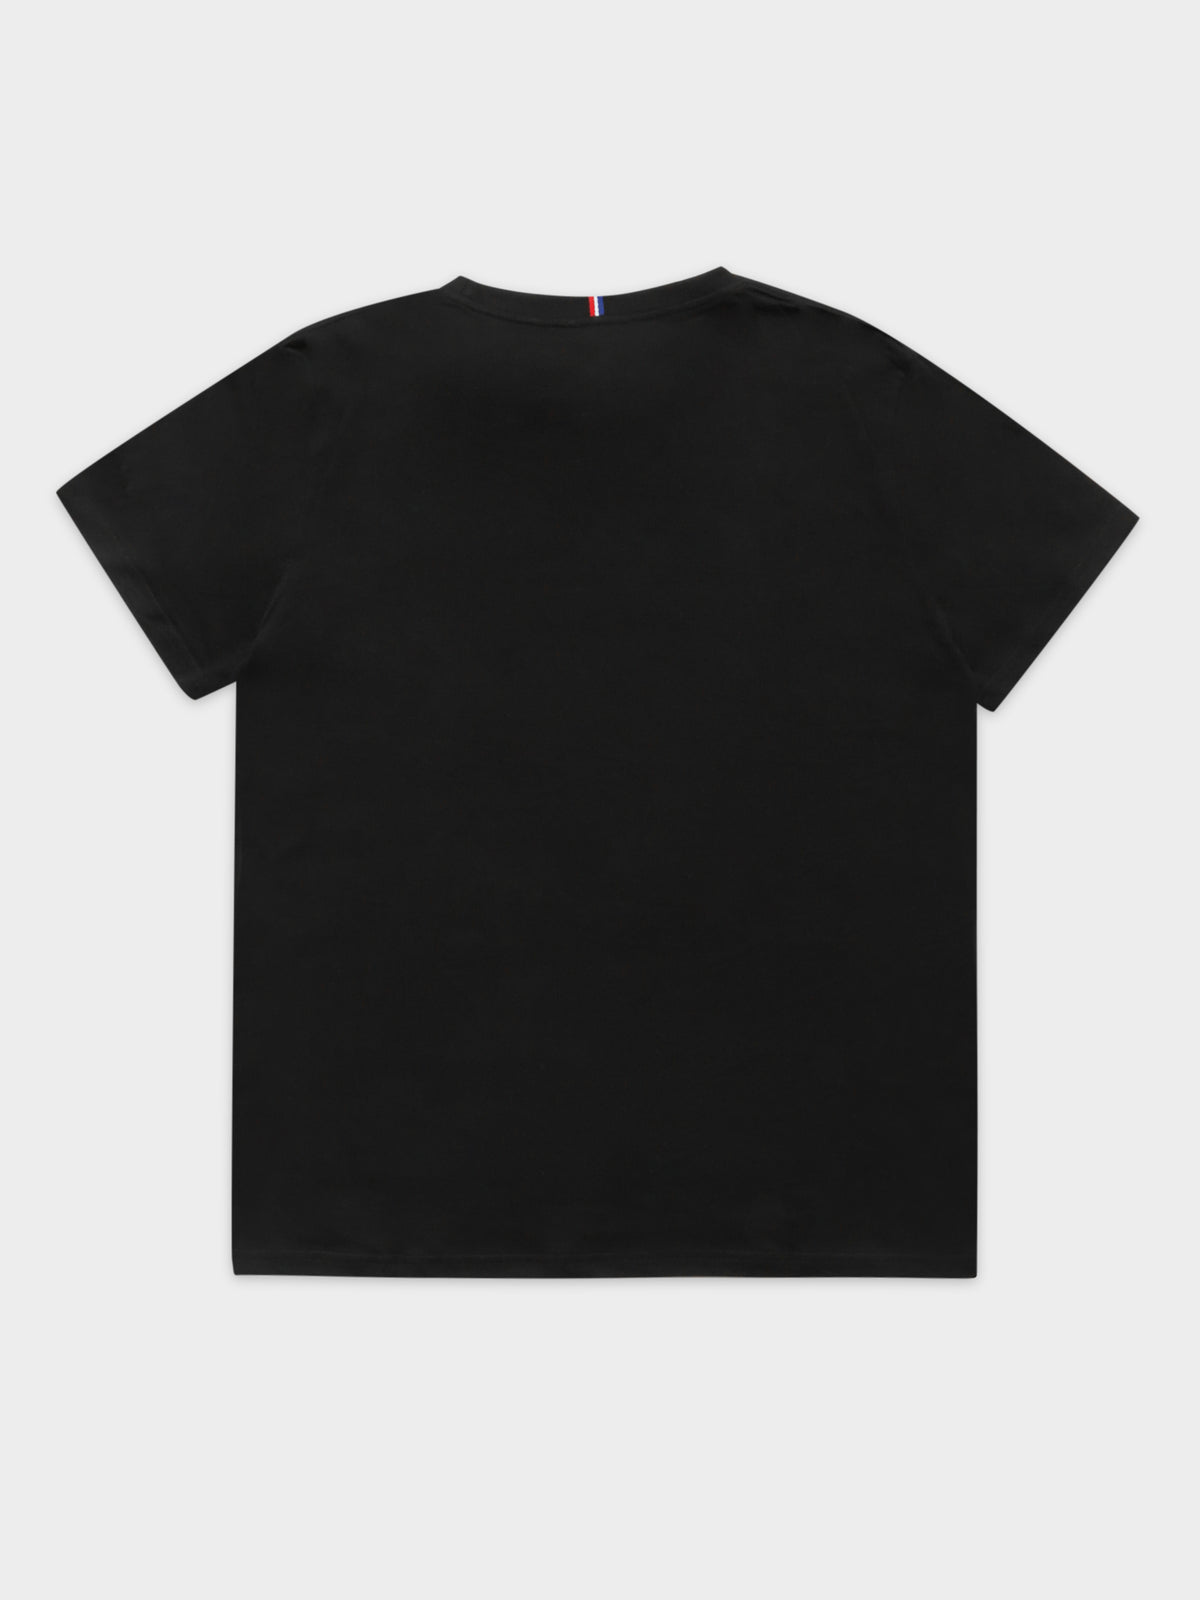 Sponser T-Shirt in Black